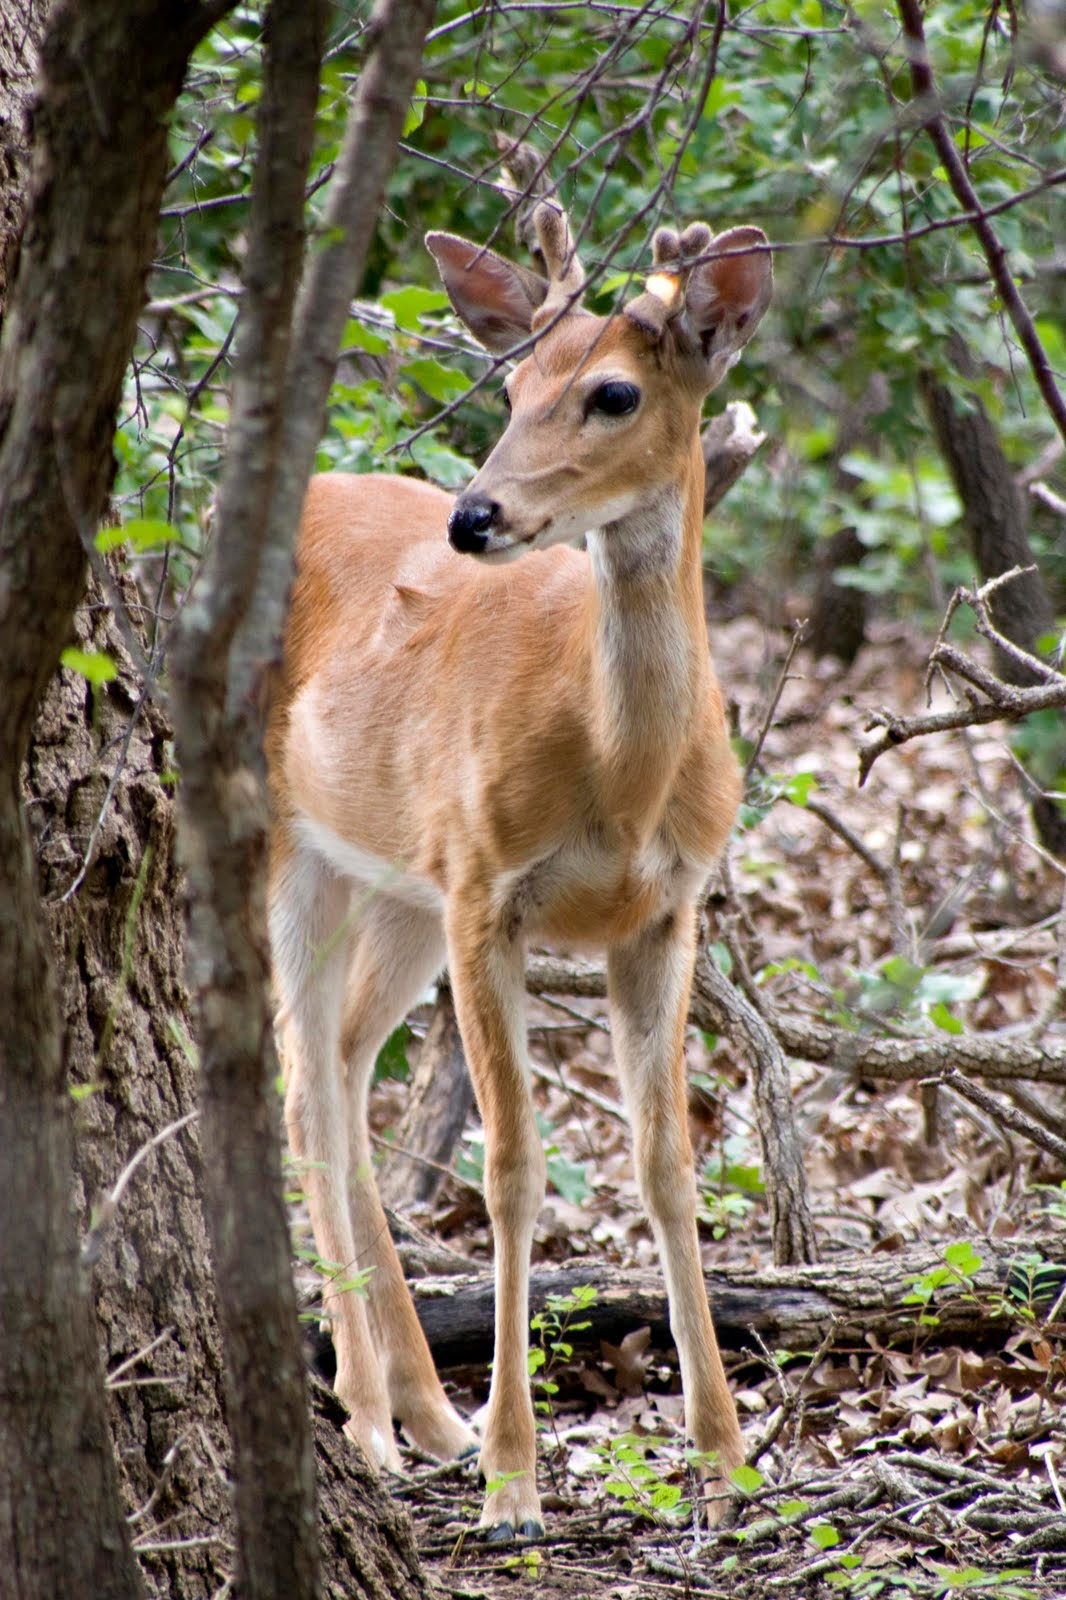 Artistic Images Photography: The Baby Deer Are Arriving!